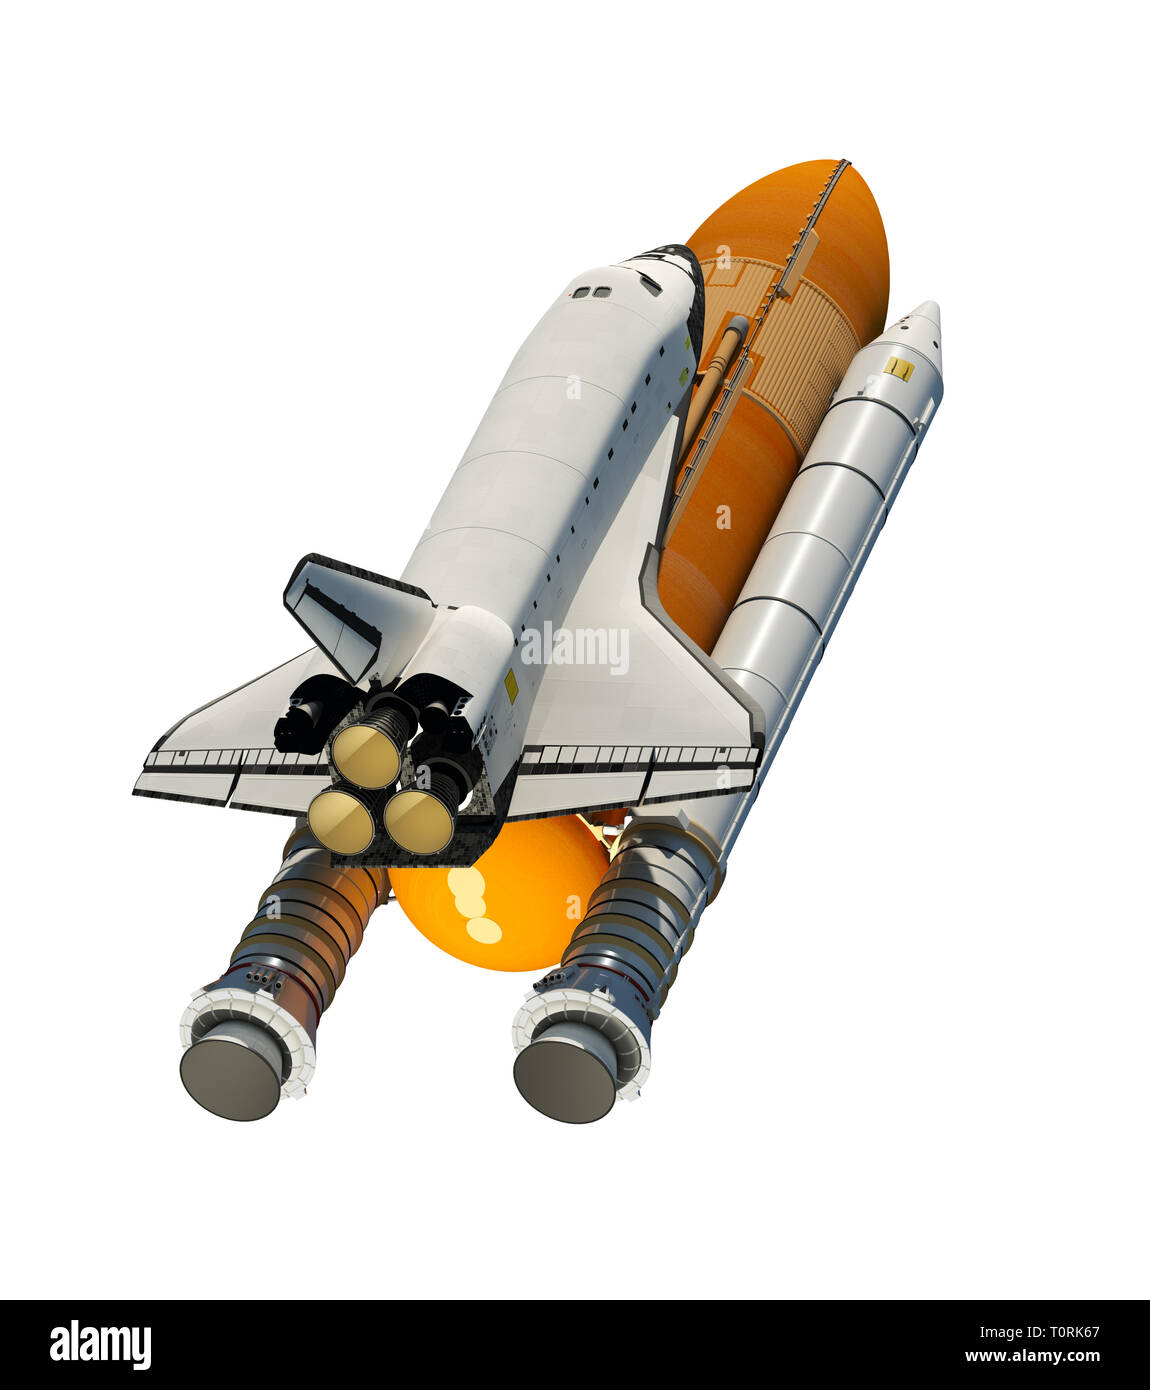 American Space Shuttle Isolated On White Background. 3D Illustration. - Stock Image